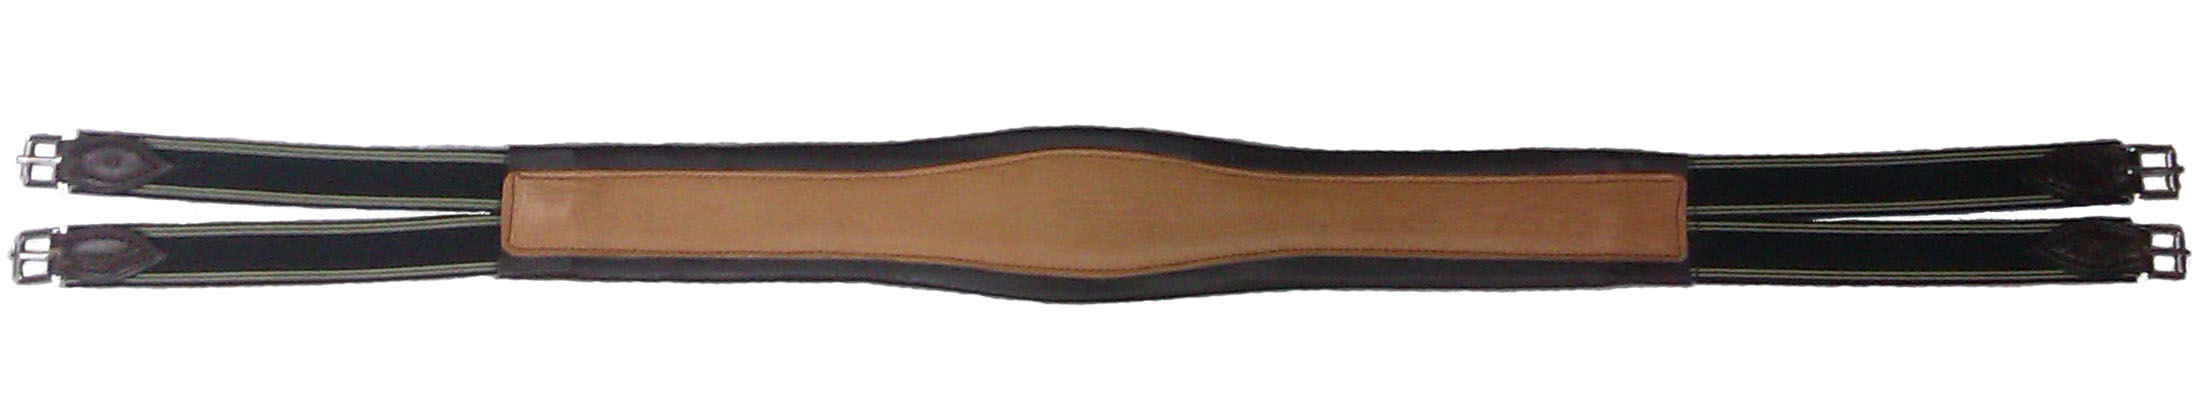 leather%20girth%204%20bkl.jpg